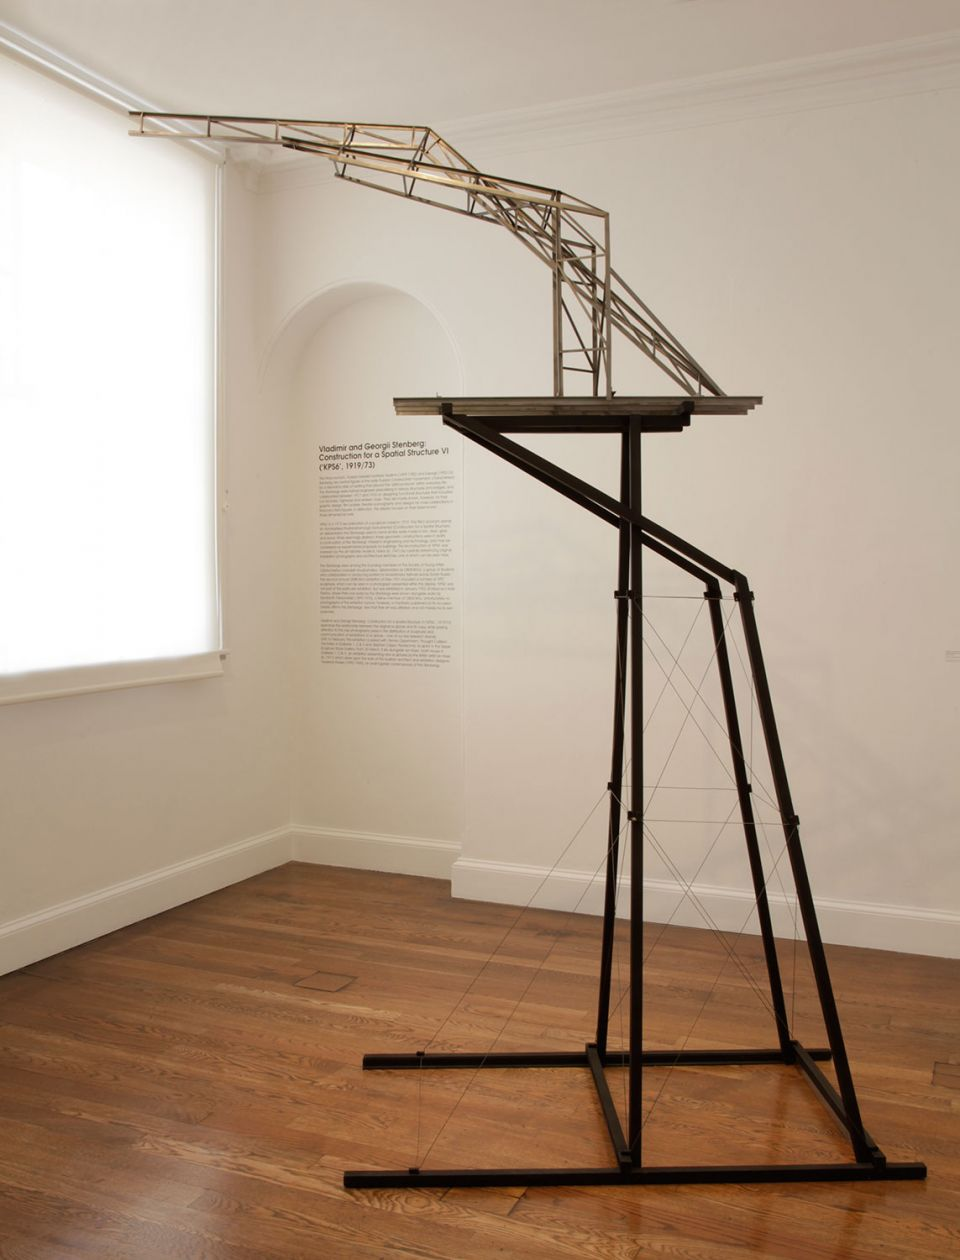 Vladimir and Georgii Stenberg, 'Construction for a Spatial Structure VI (KPS6)' (1919/1973, steel, painted wood)